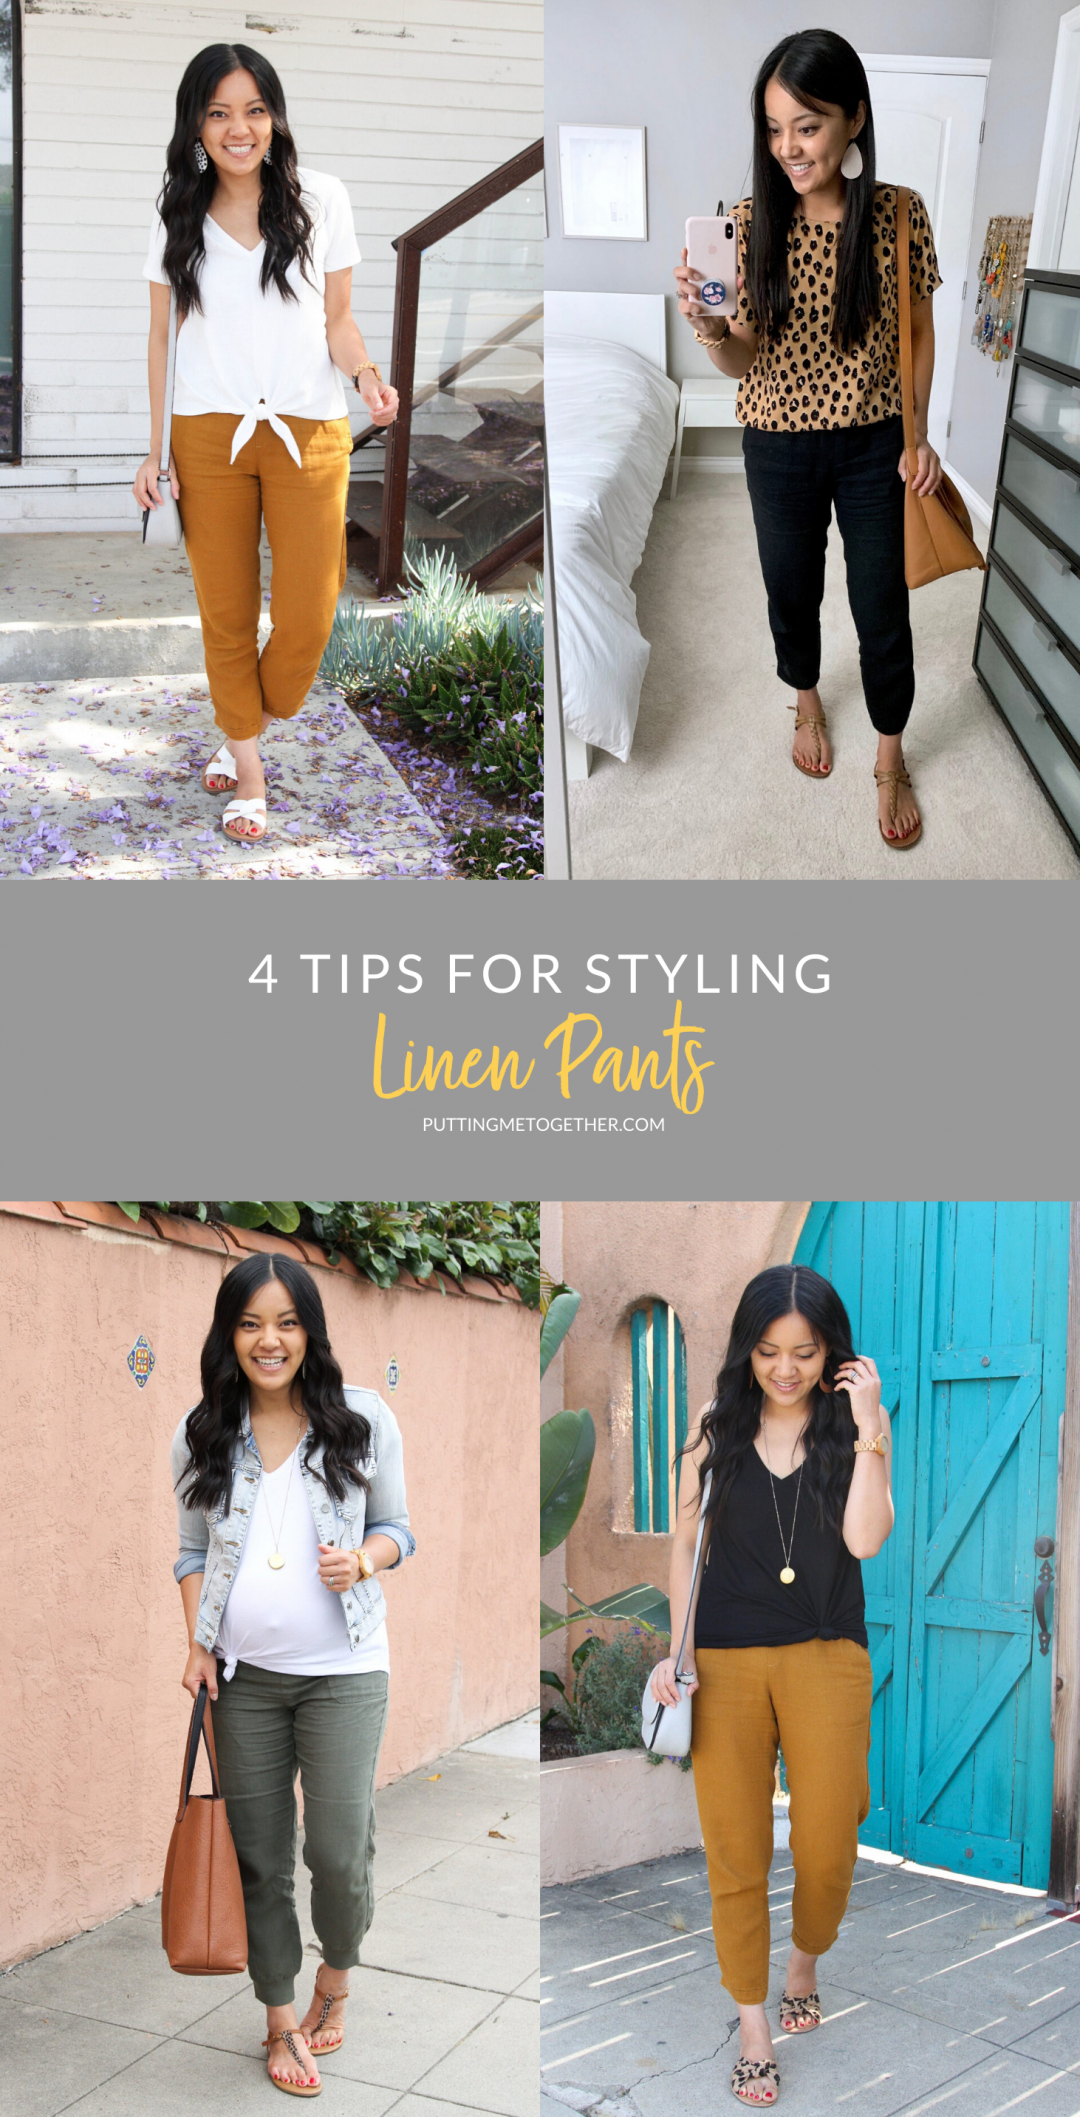 4 Tips for styling linen pants for summer